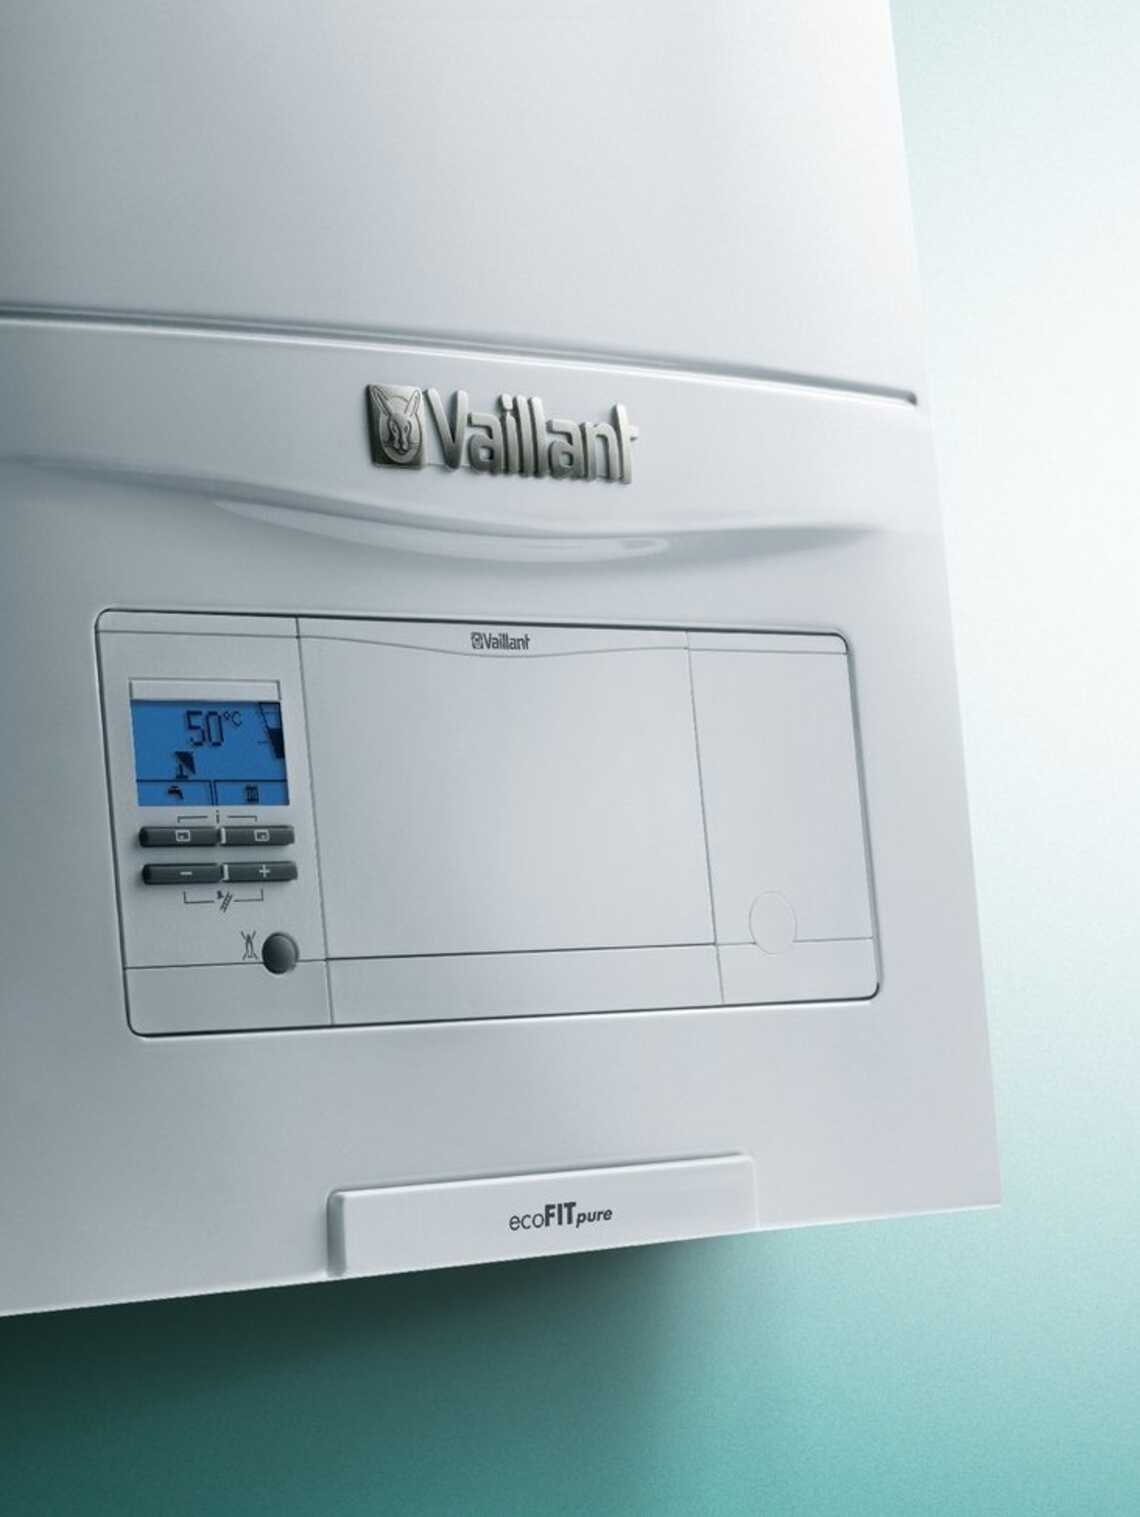 Ecofit Pure Open Vent Boiler Vaillant Uk Wiring Diagrams Y Plan Central Heating Close Up Of The Front Panel